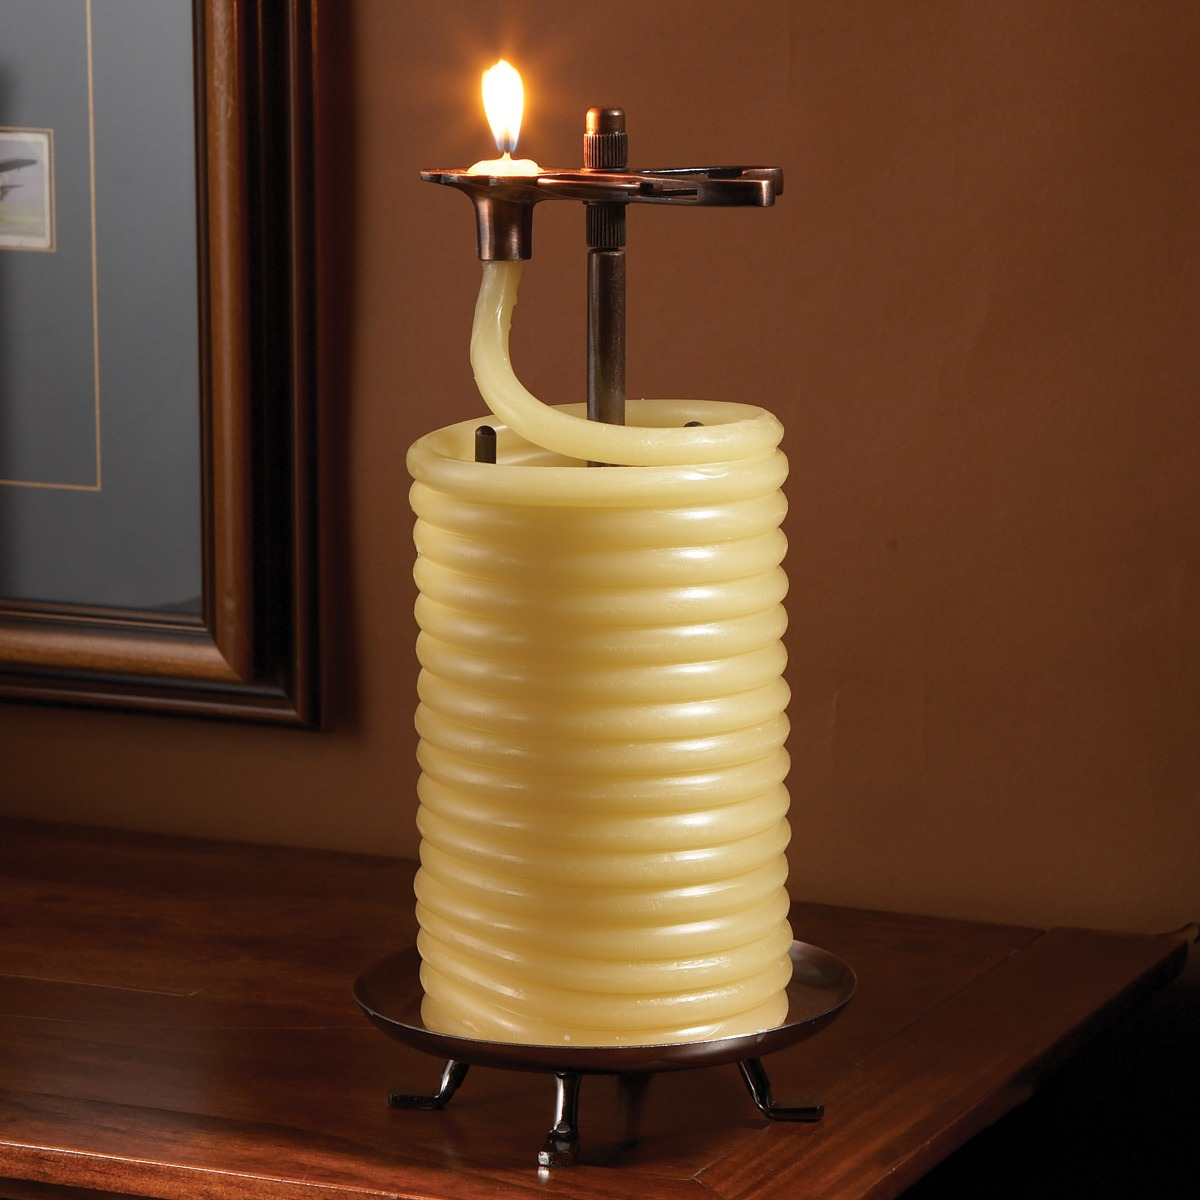 self extinguishing coil candle